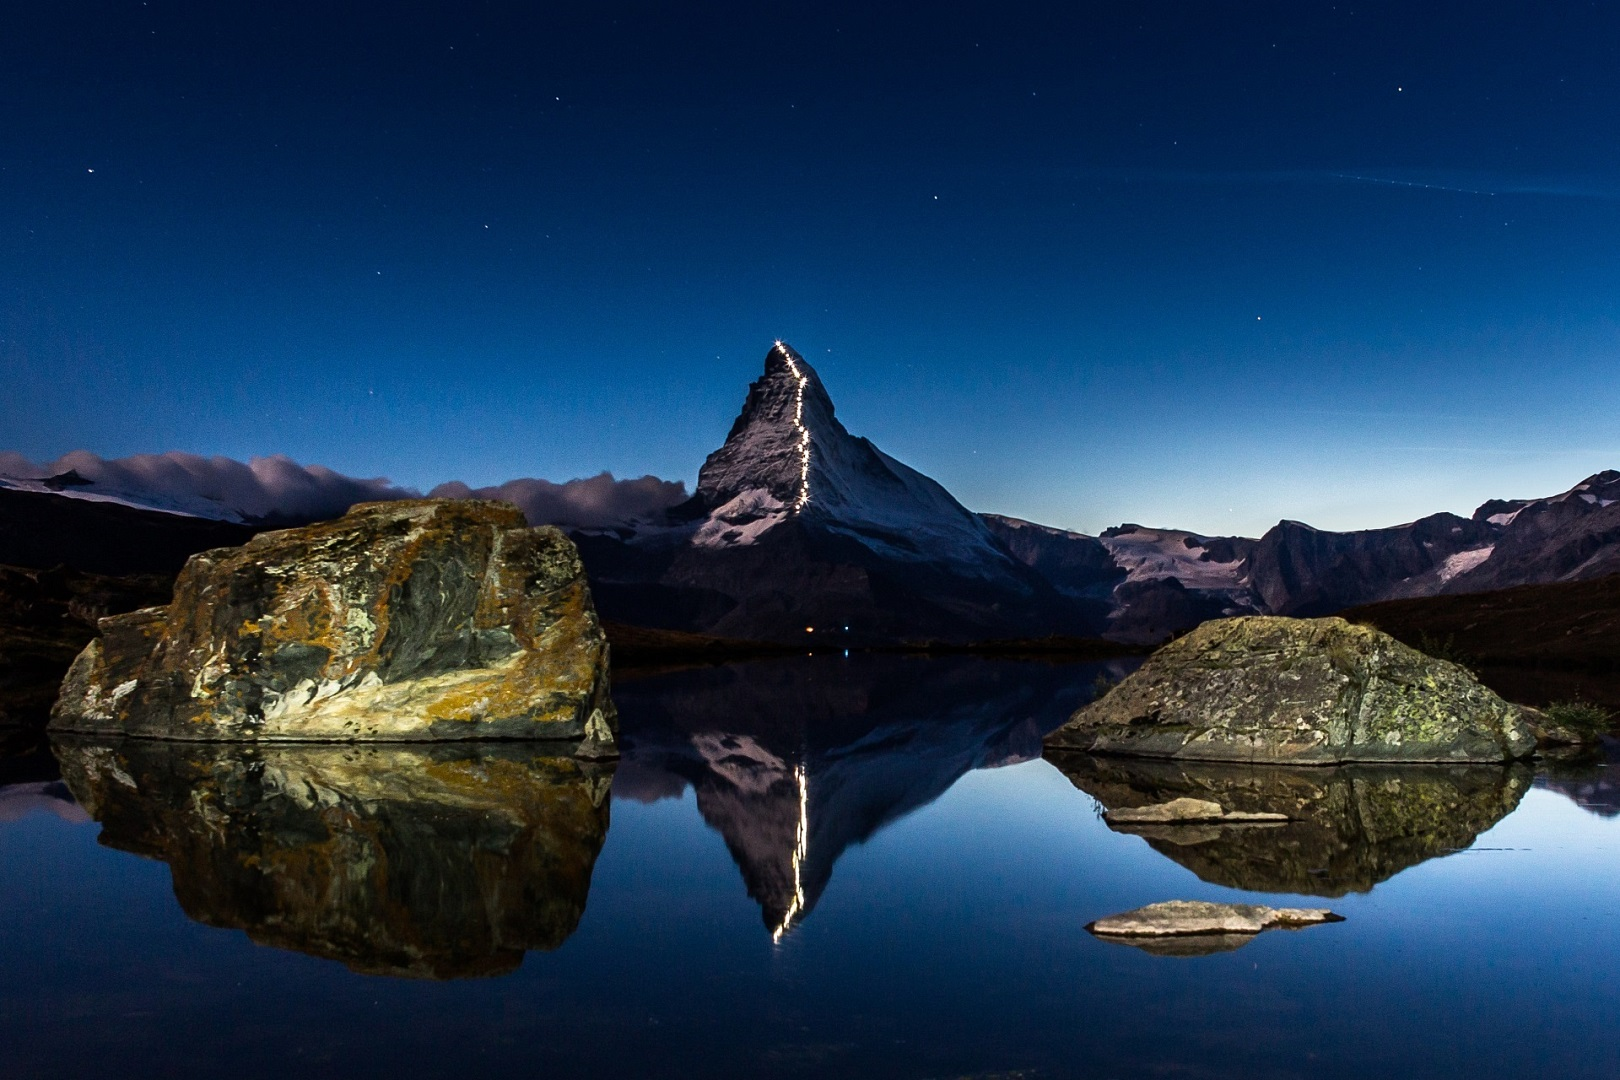 Zermatt is a place of superlatives